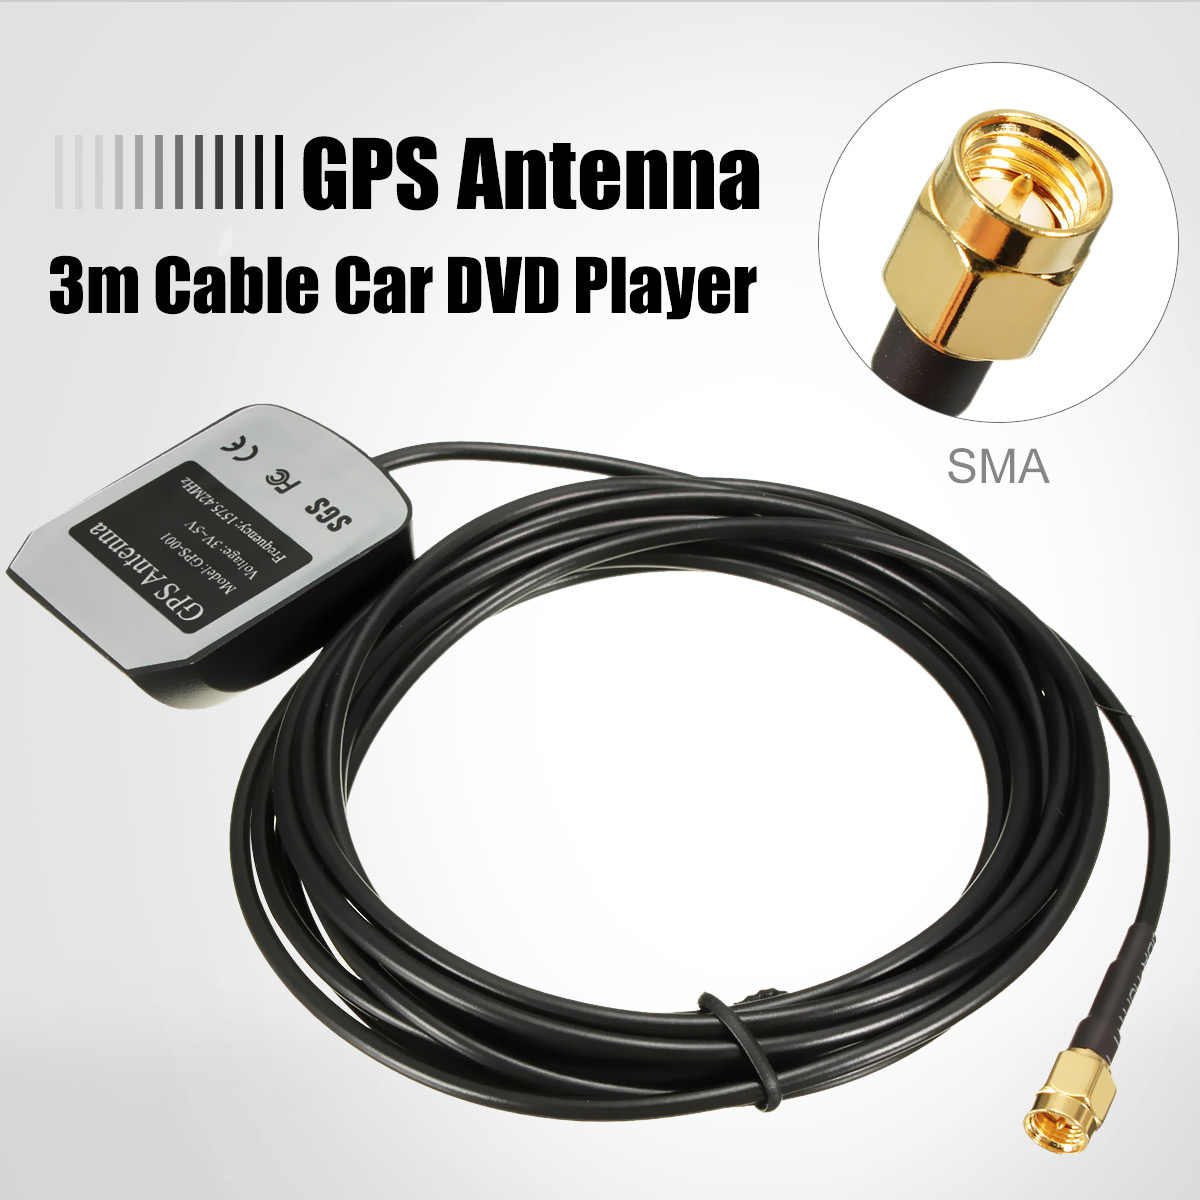 3M Auto Gps Antenne Gps Ontvanger Auto Gps Actieve Remote Antenne Antenne Adapter Connector 1575.42Mhz Sma Connector